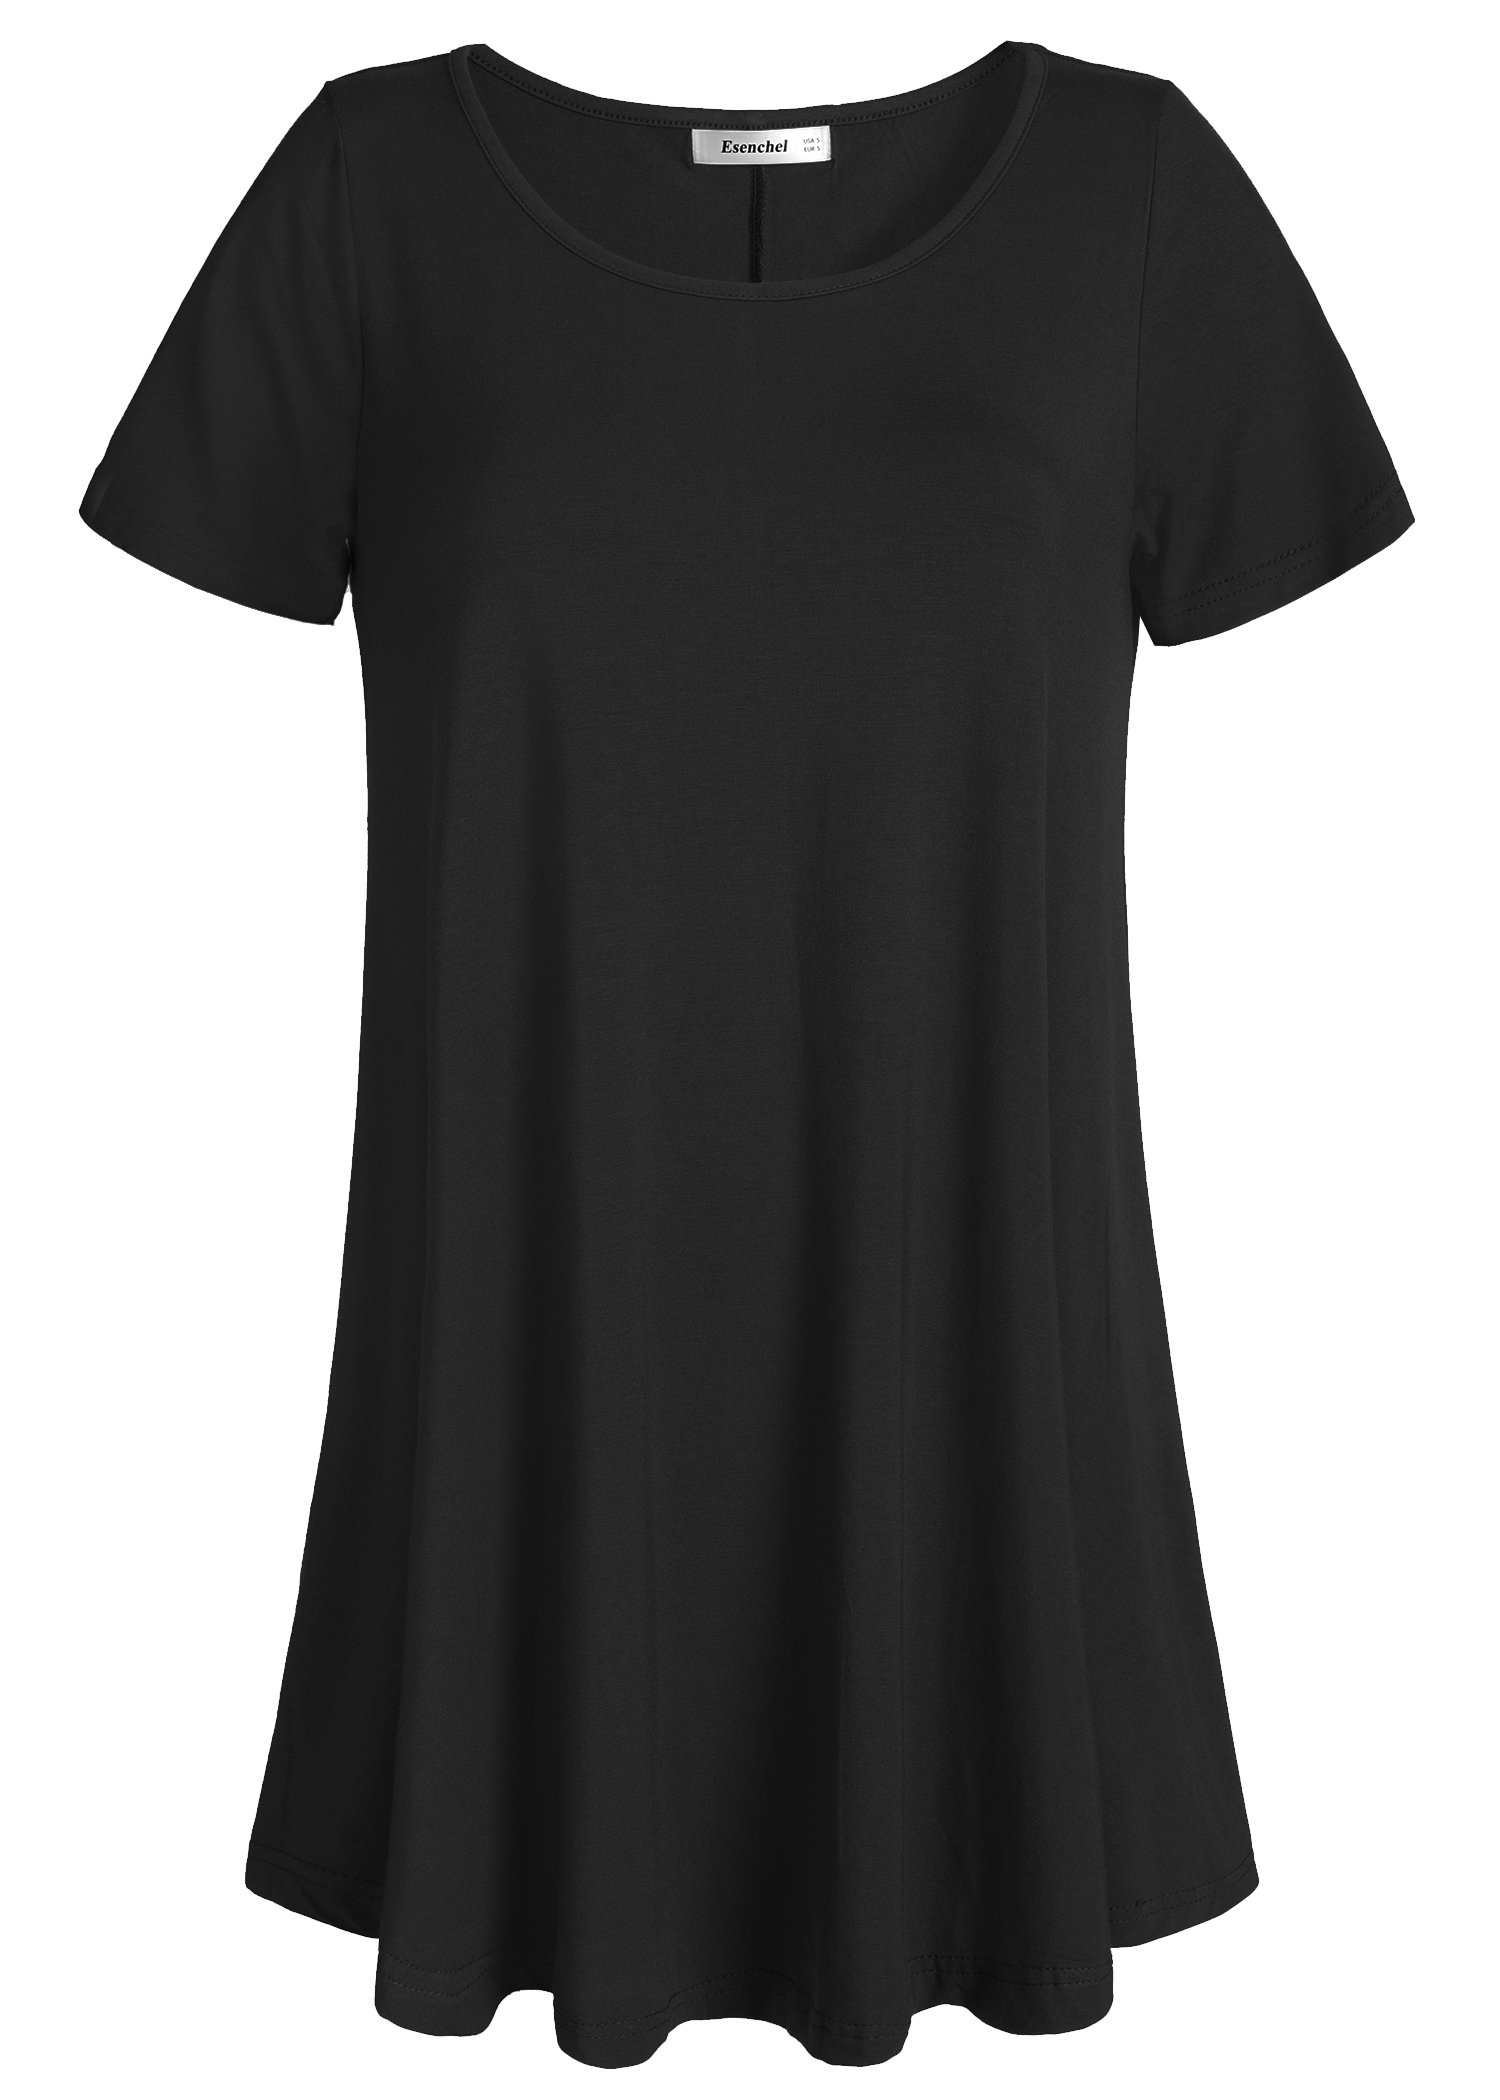 d0cee86e202 Best Rated in Women's Tunics & Helpful Customer Reviews - Amazon.com